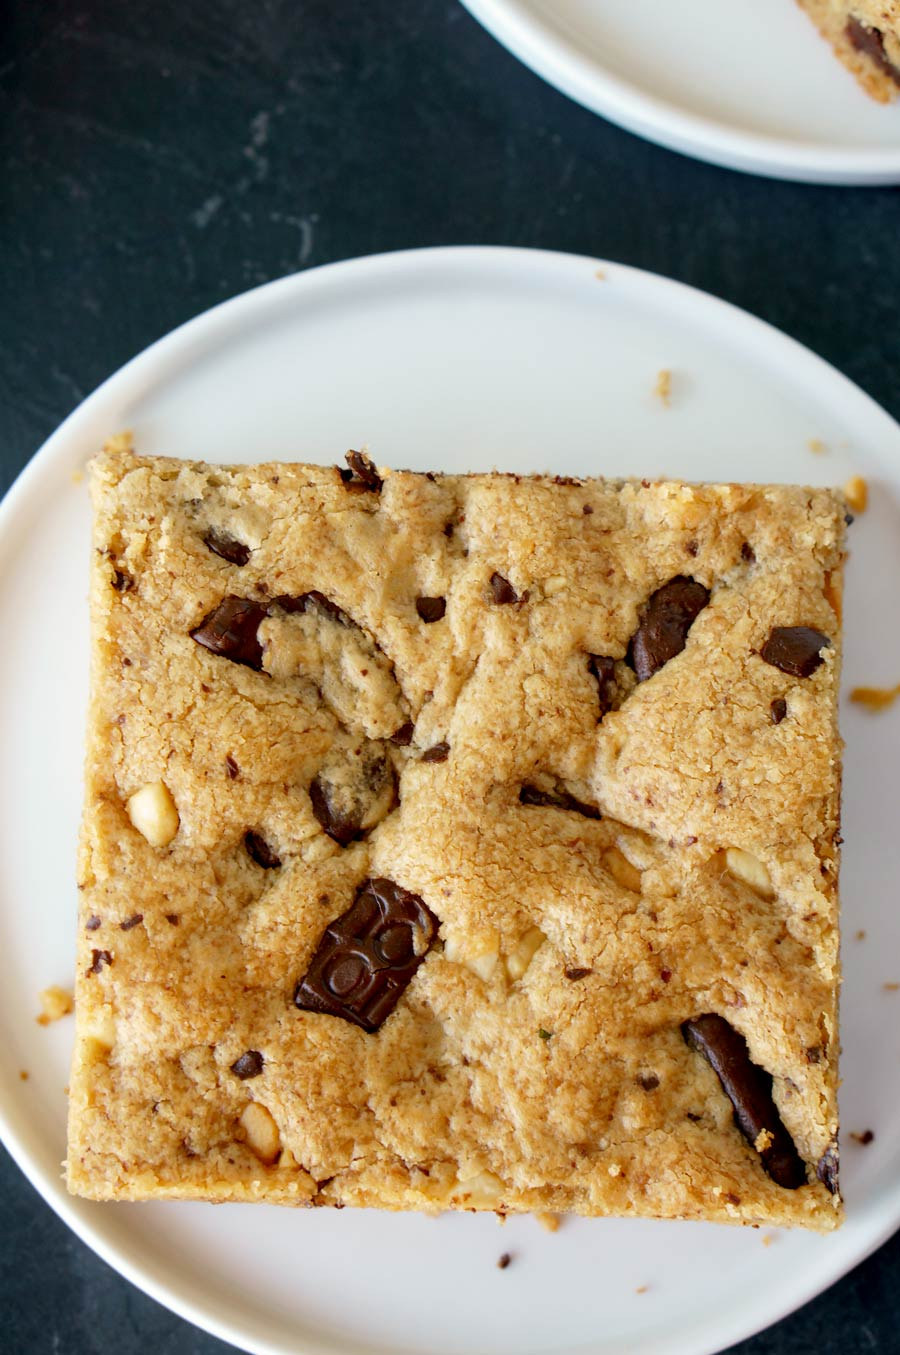 Peanut Butter Cookie Bars with a lot of dark chocolate chunks